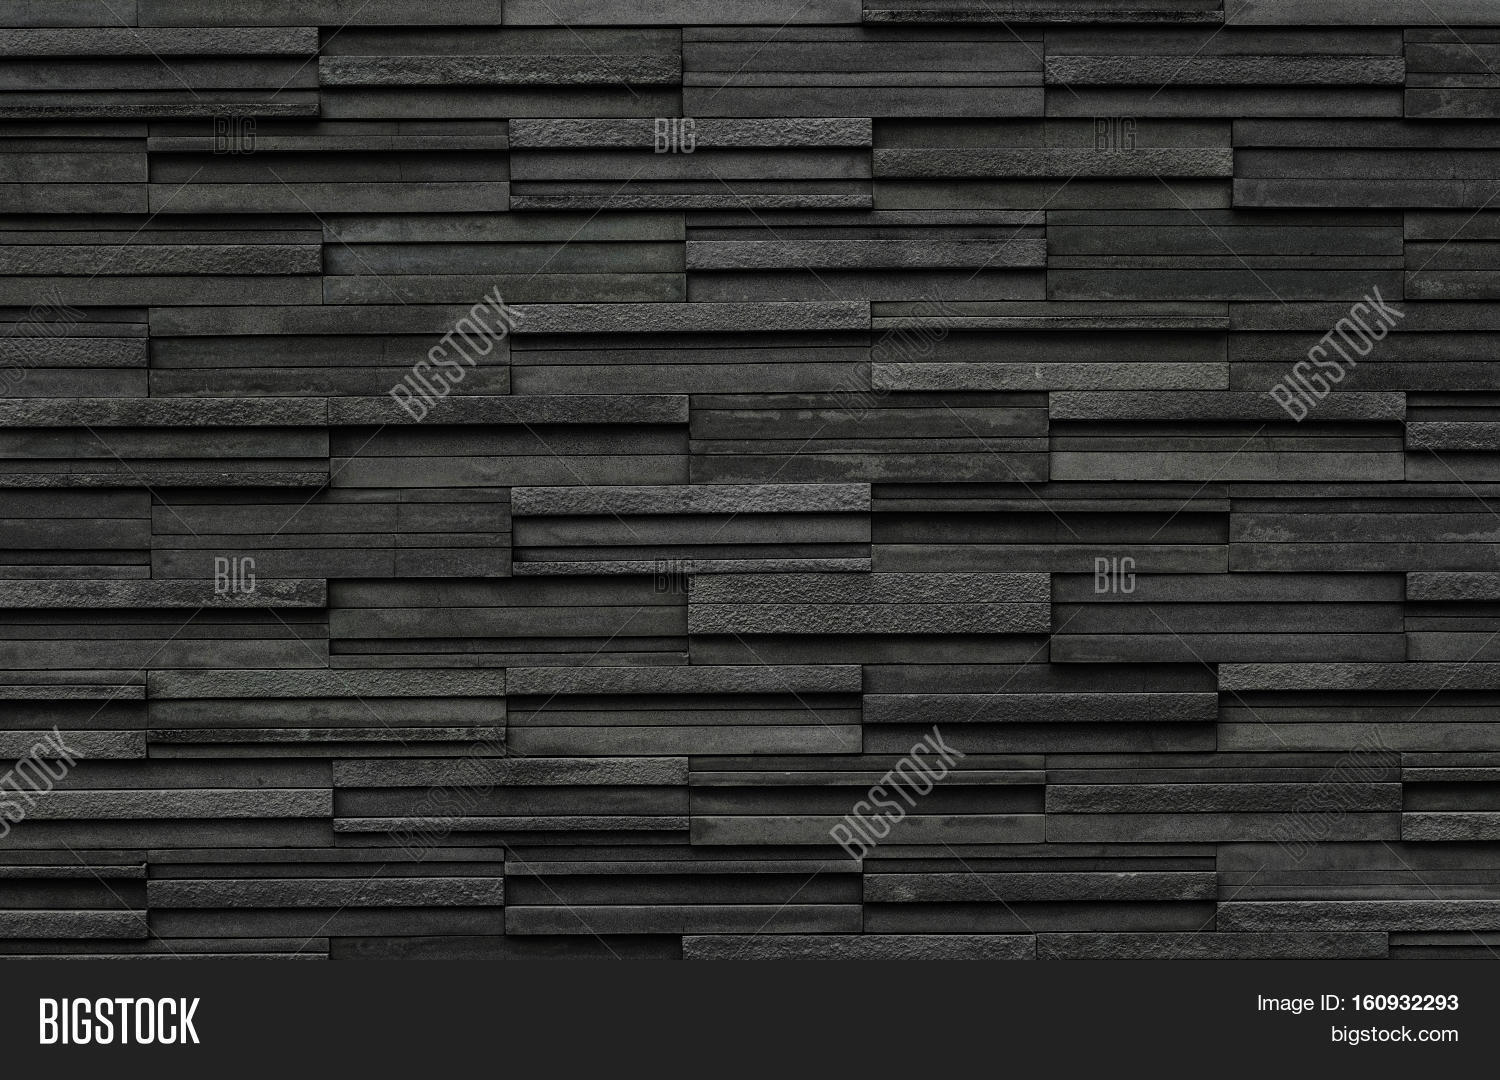 Black Bricks Slate Texture Image amp Photo Bigstock